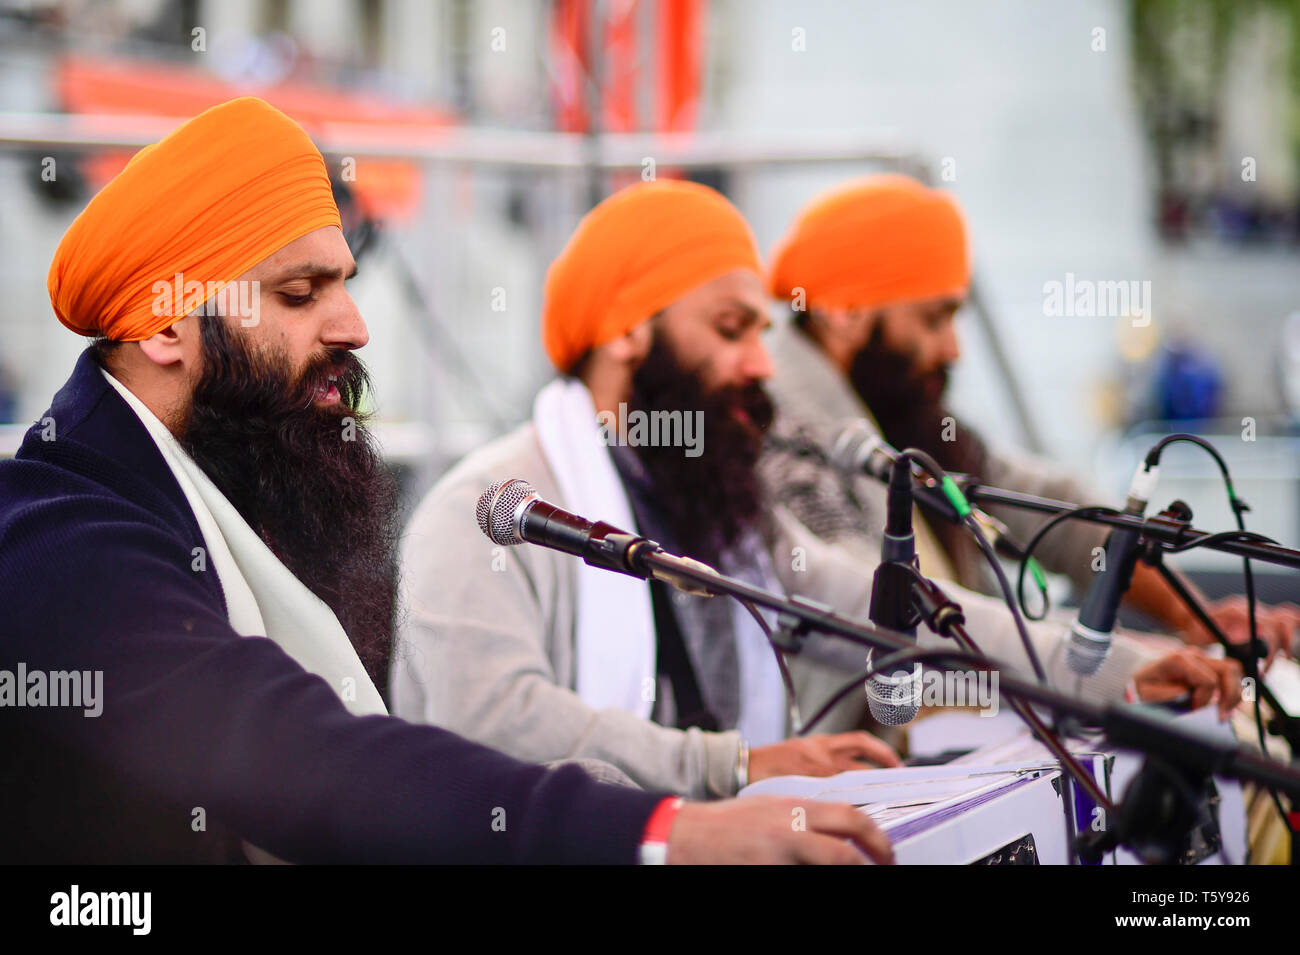 London, UK.  27 April 2019.  Performers on stage during the festival of Vaisakhi in Trafalgar Square, hosted by the Mayor of London.  For Sikhs and Punjabis, the festival celebrates the spring harvest and commemorates the founding of the Khalsa community over 300 years ago.  Credit: Stephen Chung / Alamy Live News - Stock Image